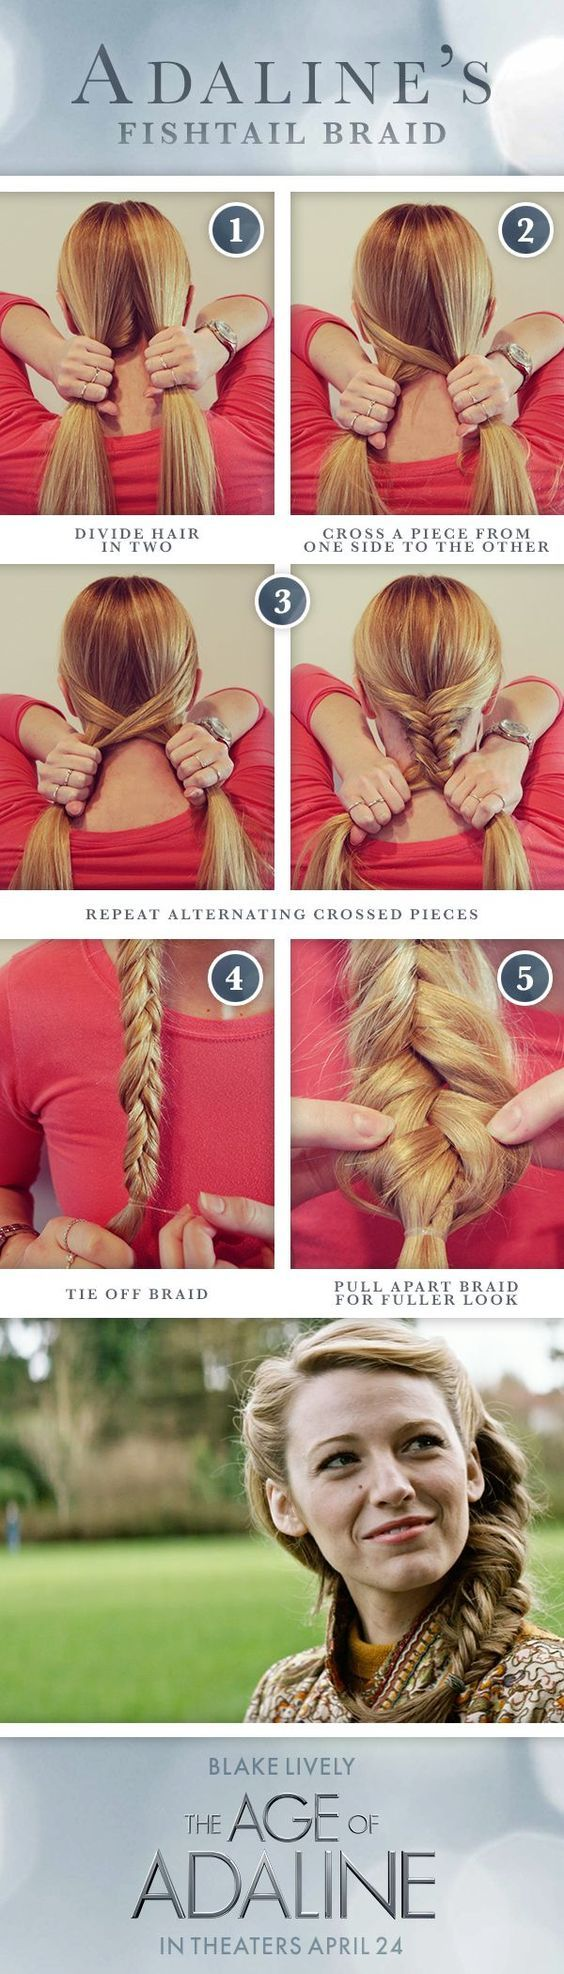 Some looks are timeless, like Adaline's fishtail braid. It's quick and easy for any occasion!